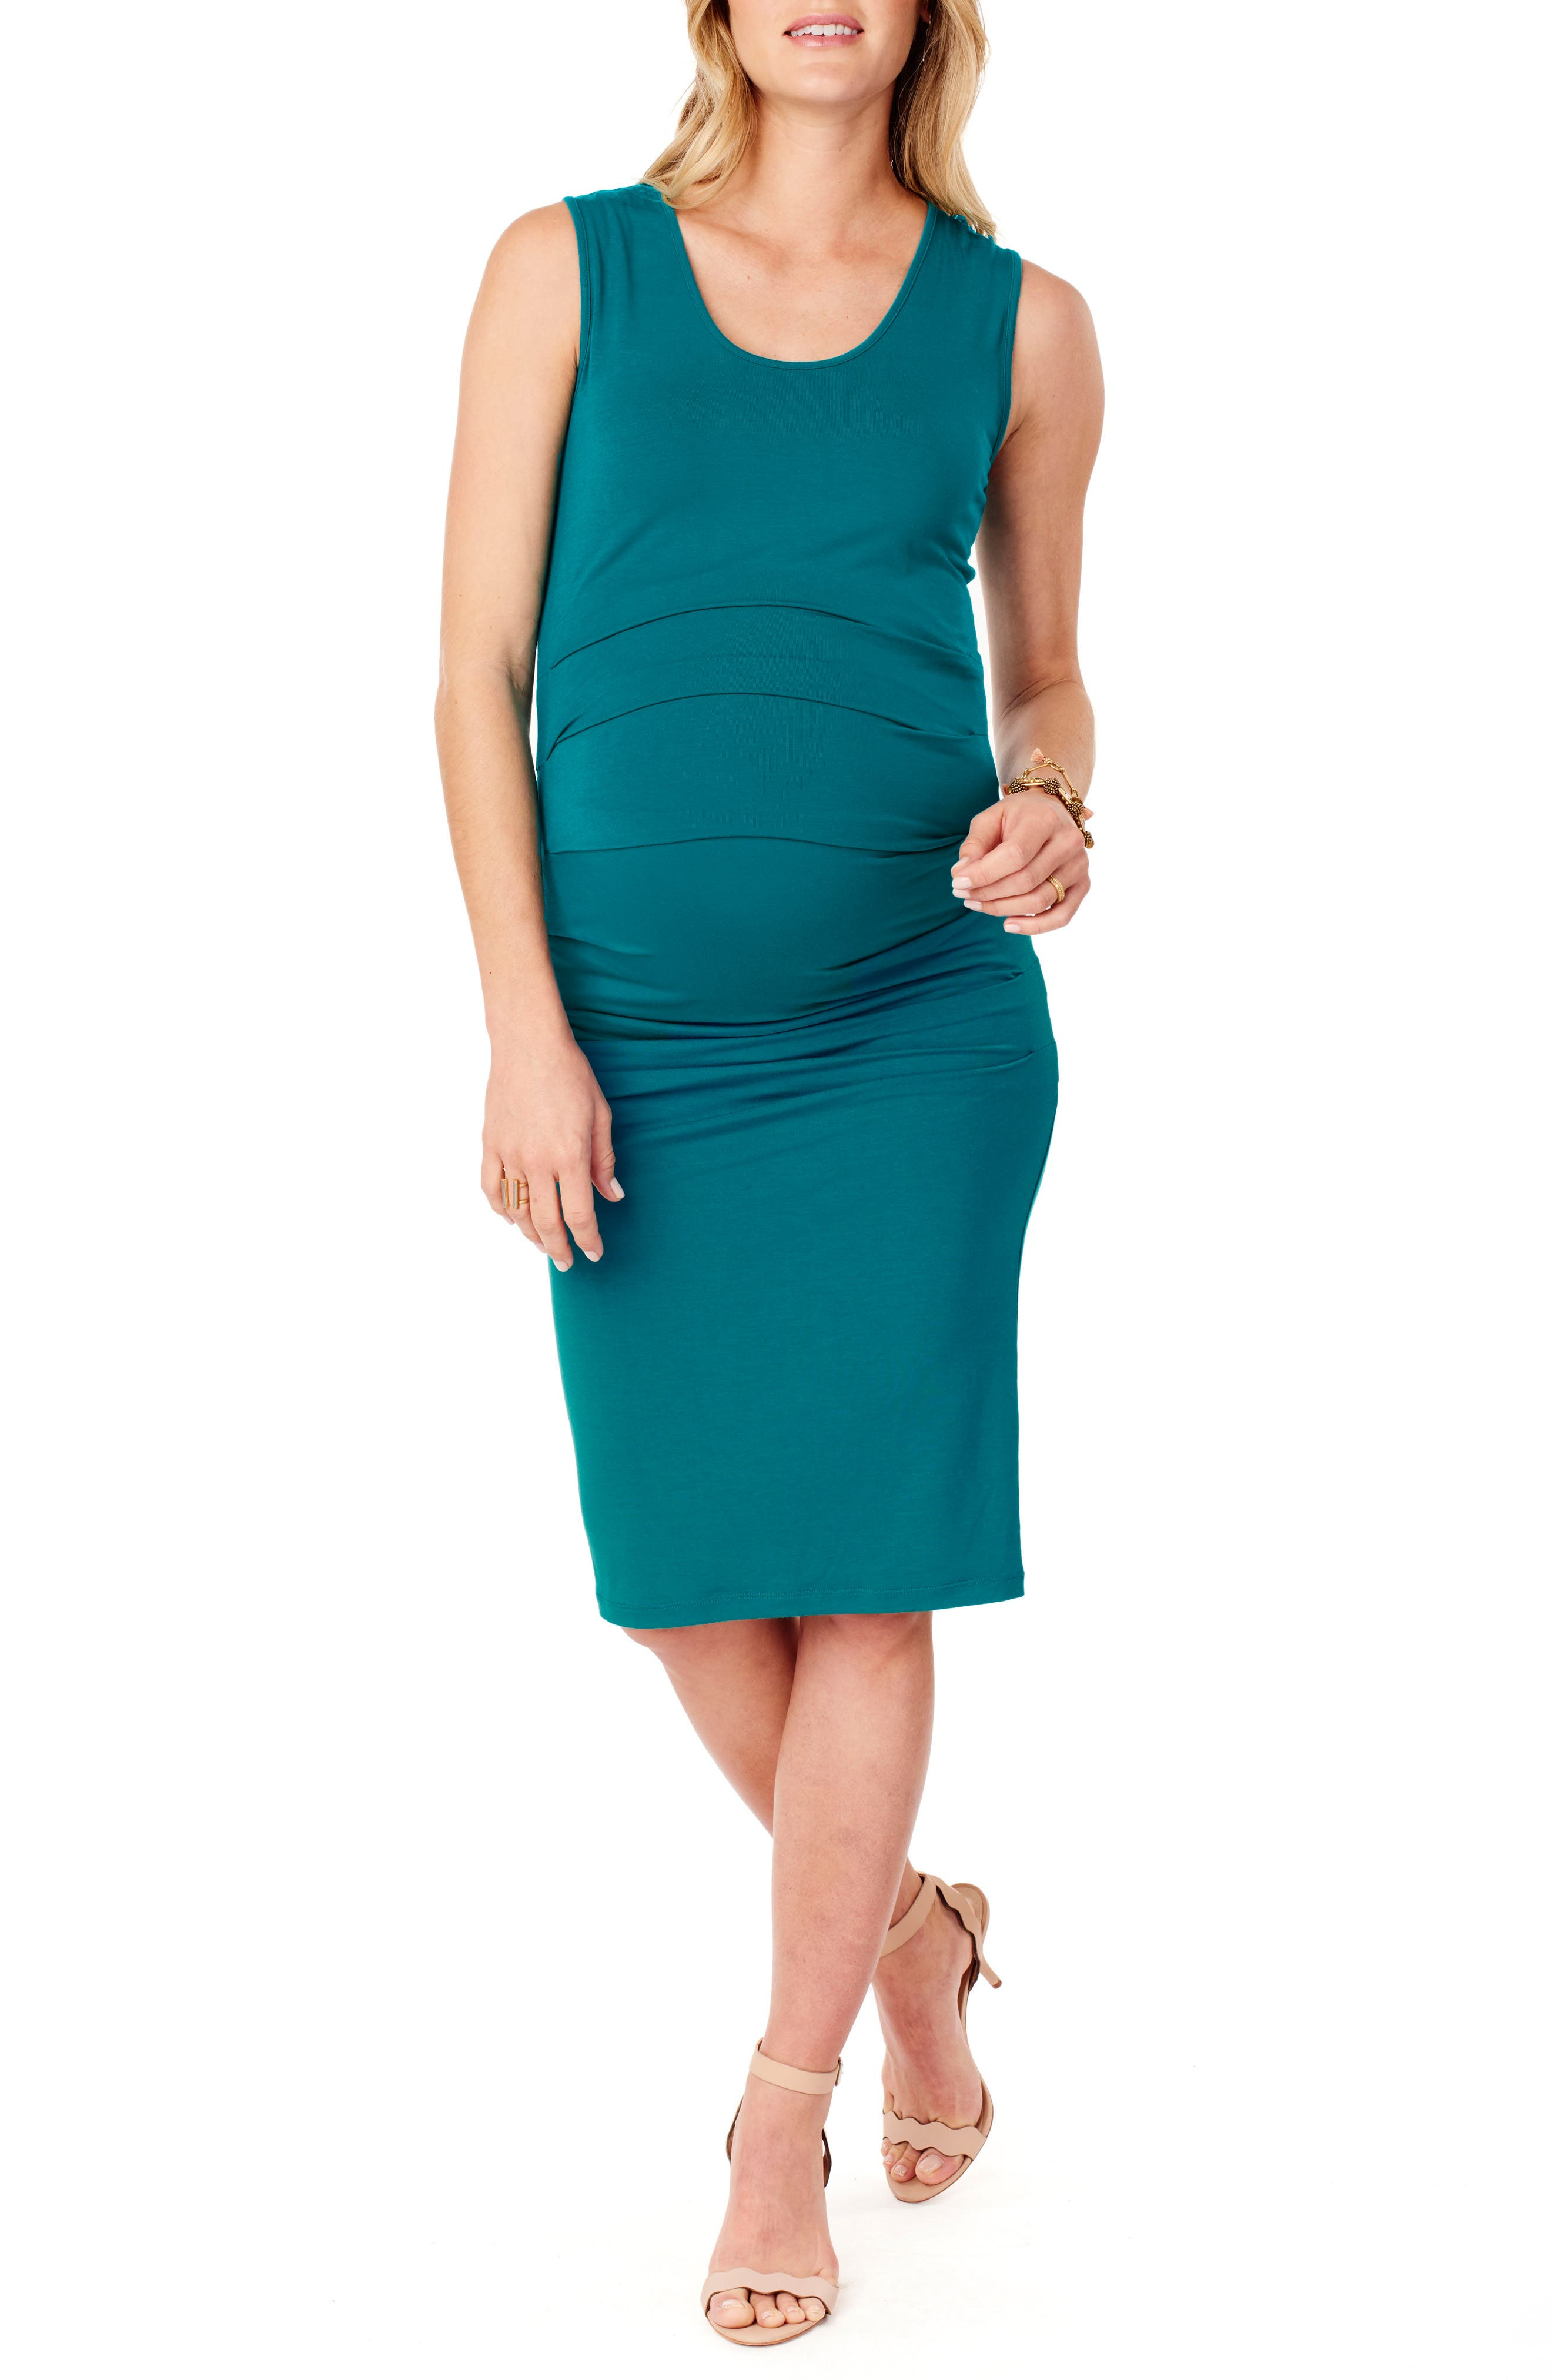 INGRID & ISABEL<SUP>®</SUP>, Ruched Maternity Tank Dress, Main thumbnail 1, color, TEAL